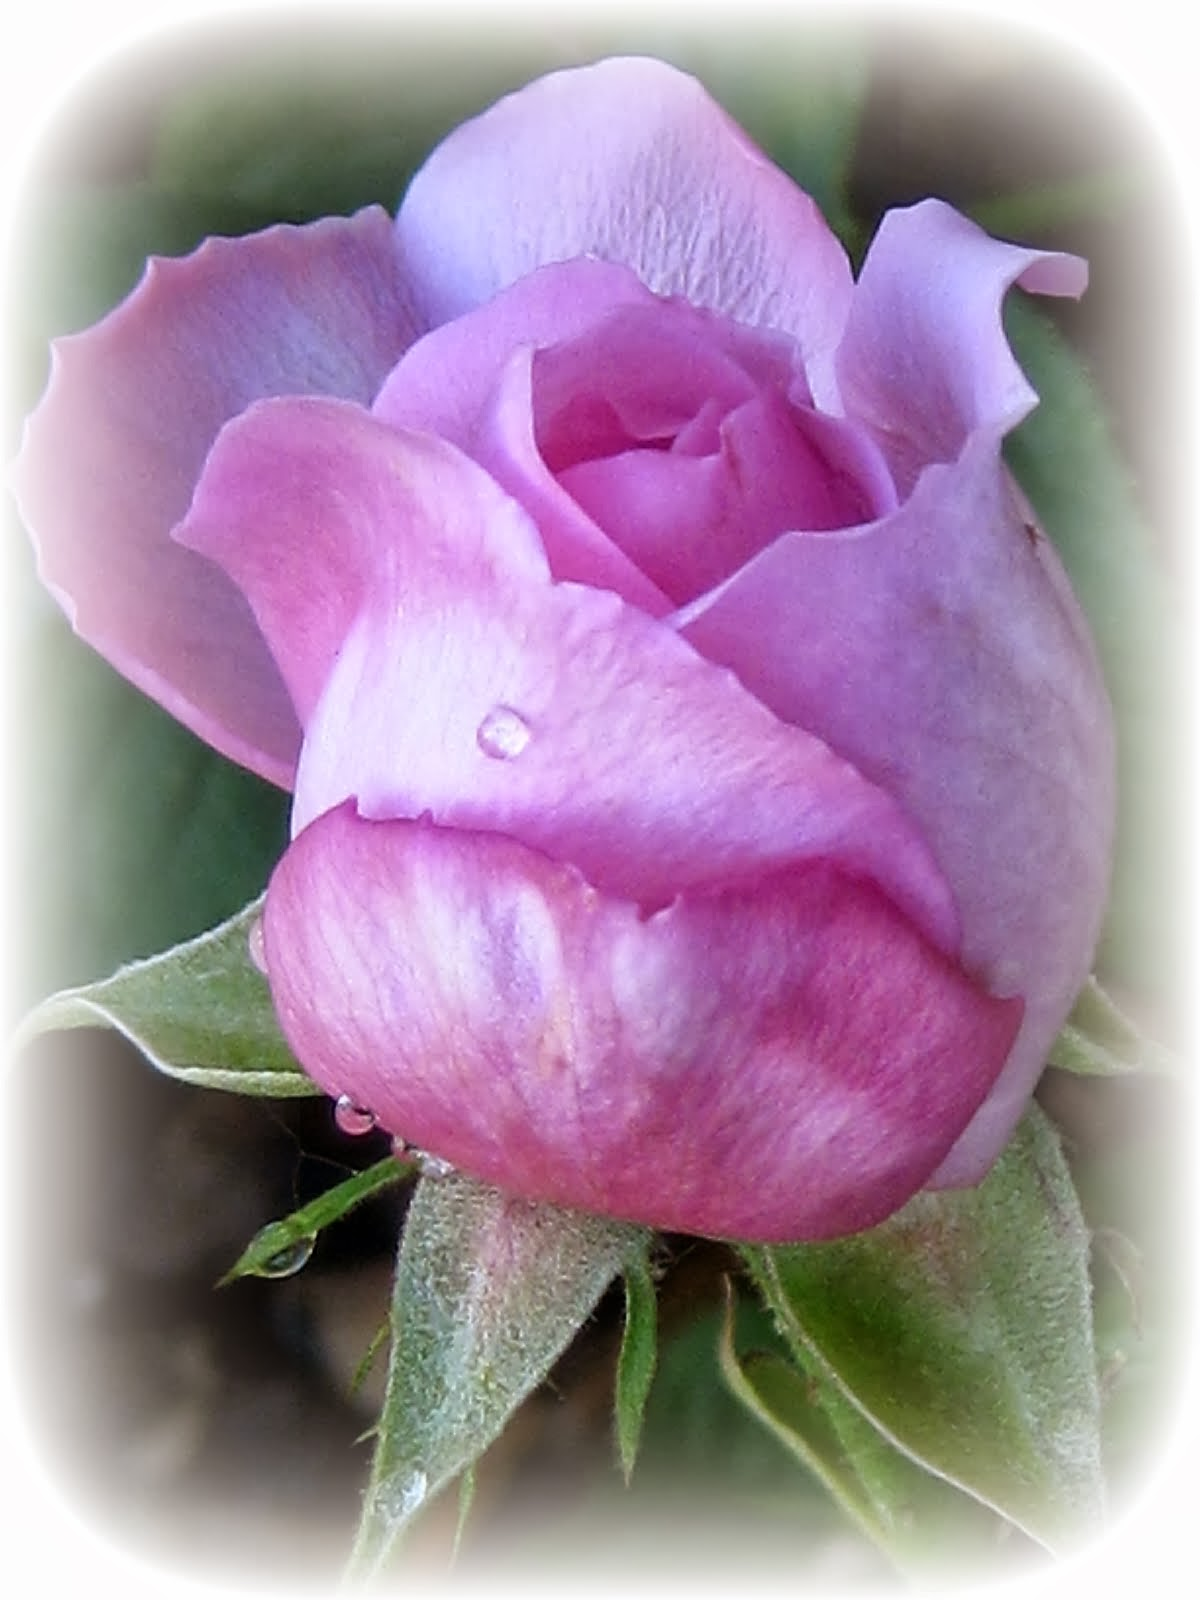 Dreaming of Spring...  and sunshine... and warmth... and pink roses named Gertrude...